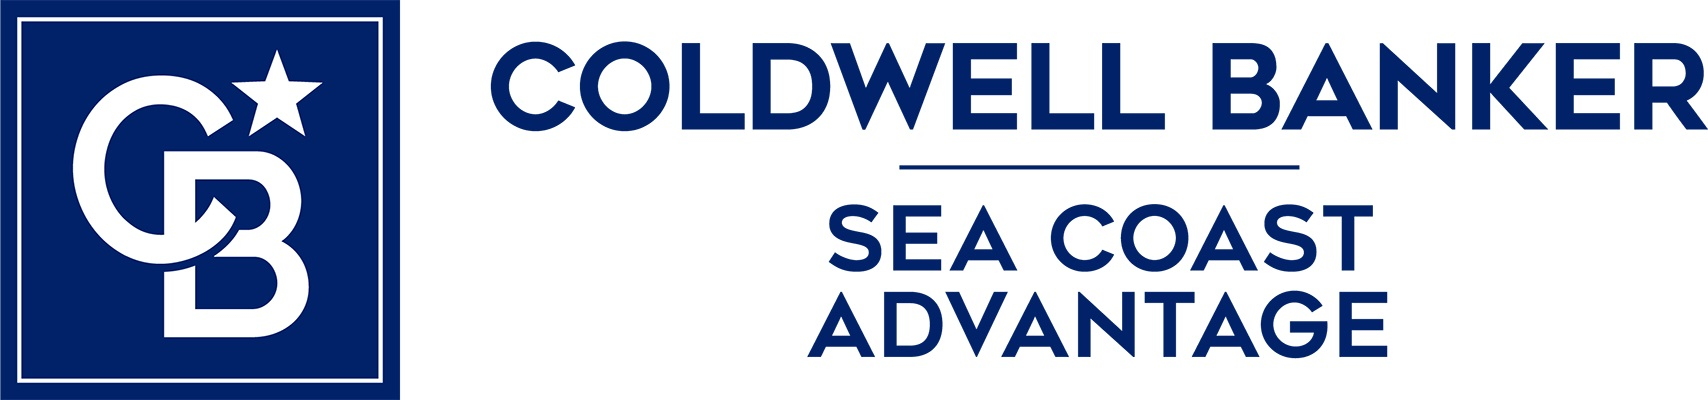 Bradley Farrell - Coldwell Banker Sea Coast Advantage Realty